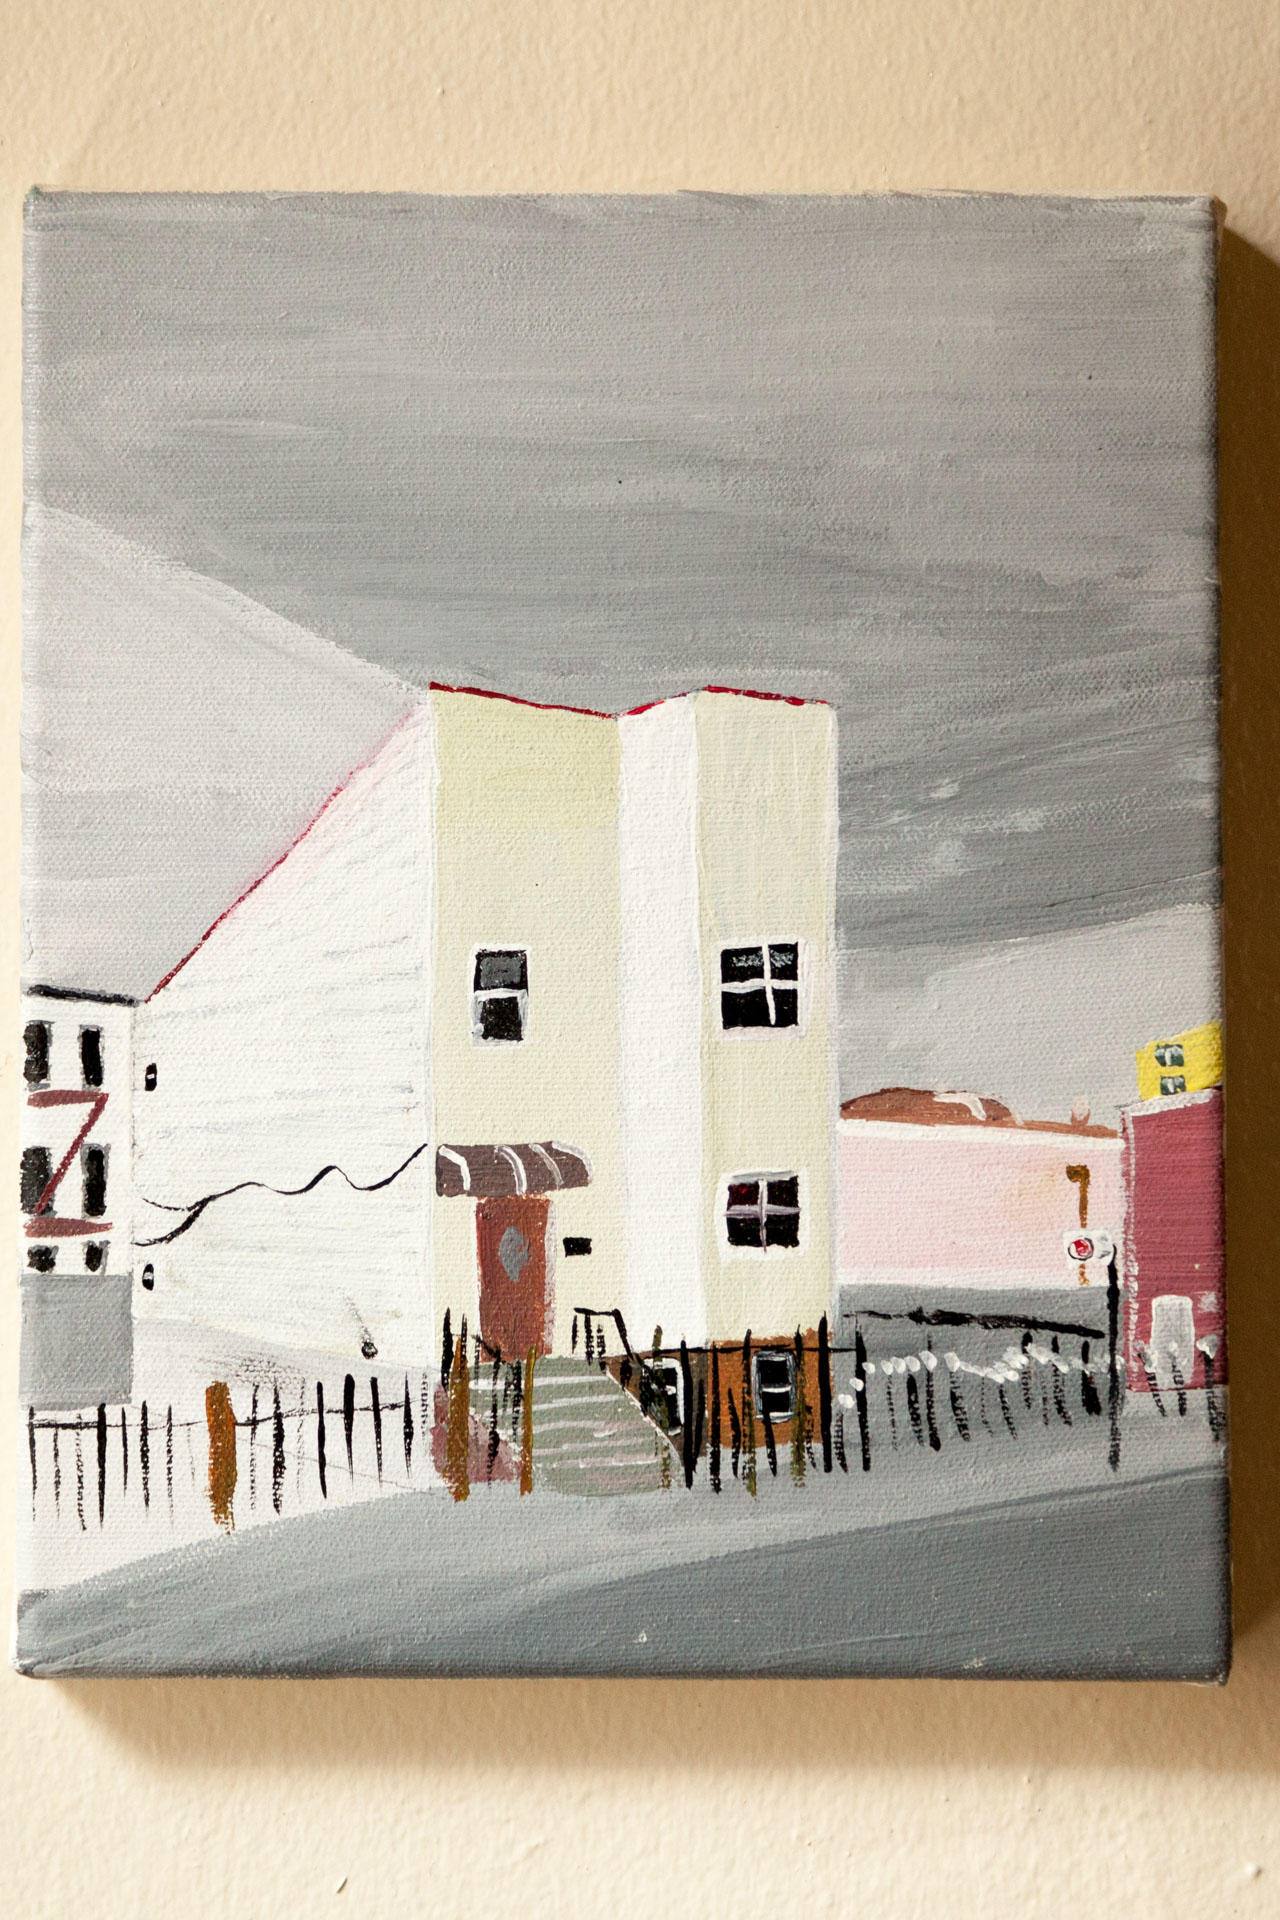 "Menahan St., Acrylic on Canvas, 8""x10"", 2015"